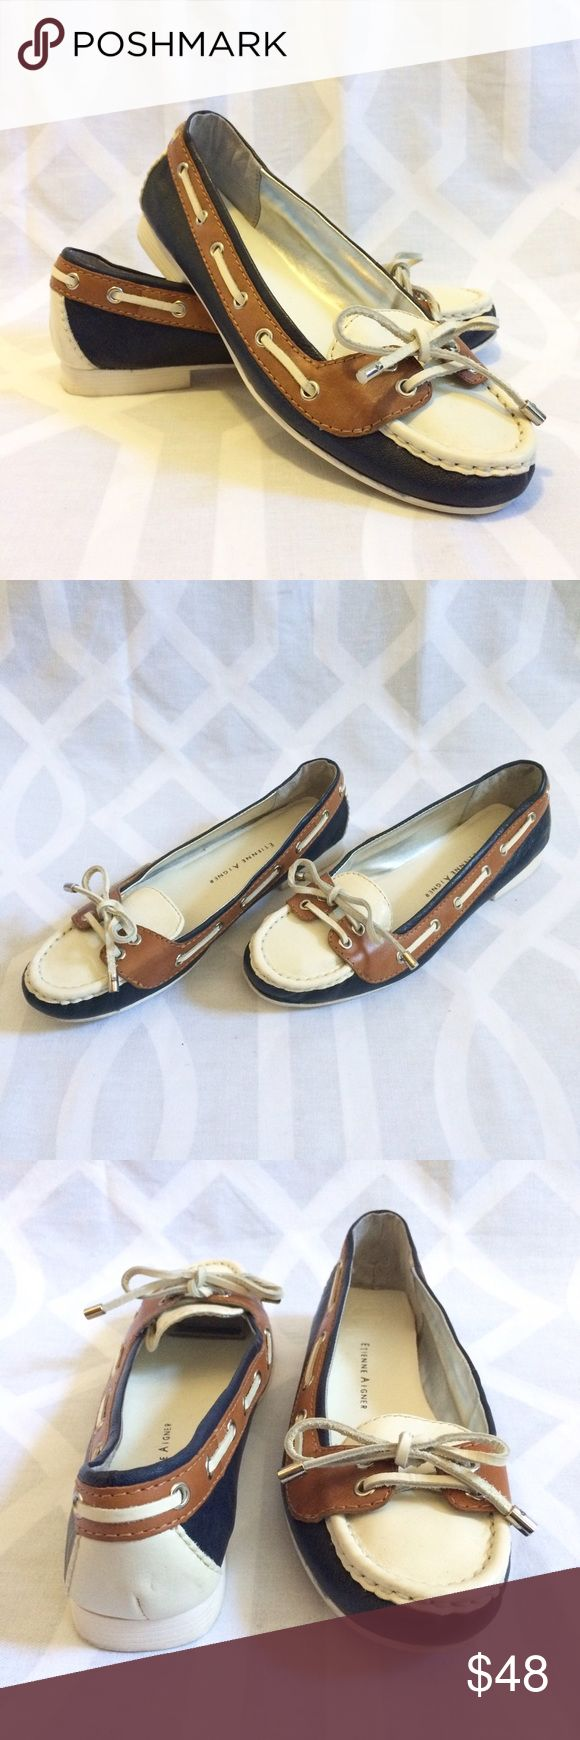 ETIENNE AIGNER Navy Contrast Leather Boat Shoe ETIENNE AIGNER Navy, Tan, & Cream Genuine Leather Boat Shoe Loafers. Leather Ties, Silver-Tone Hardware. Classic. Cool. Comfortable. Beachwear. Brunchwear. Everyday wear.  Condition: Excellent/EUC   Material: Genuine Leather  Style: Boat Shoe Loafer Size: 8 Heel Height: 5/8in Etienne Aigner Shoes Flats & Loafers